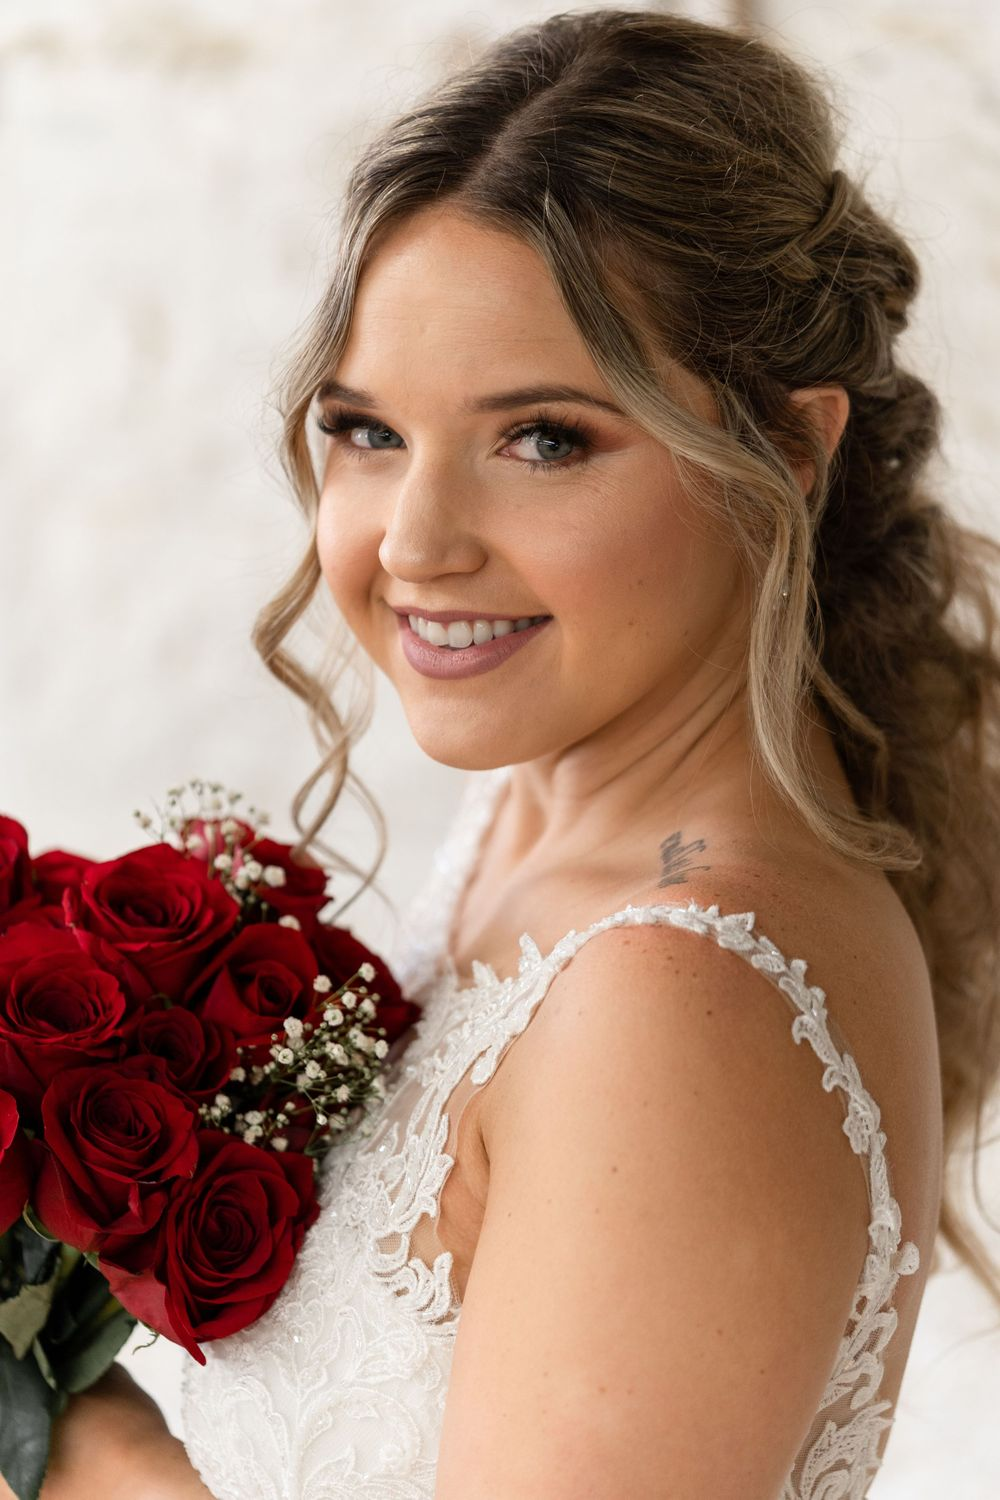 Bridal beauty portrait with bouquet by alexis Burton photographer Hamilton wedding photographer